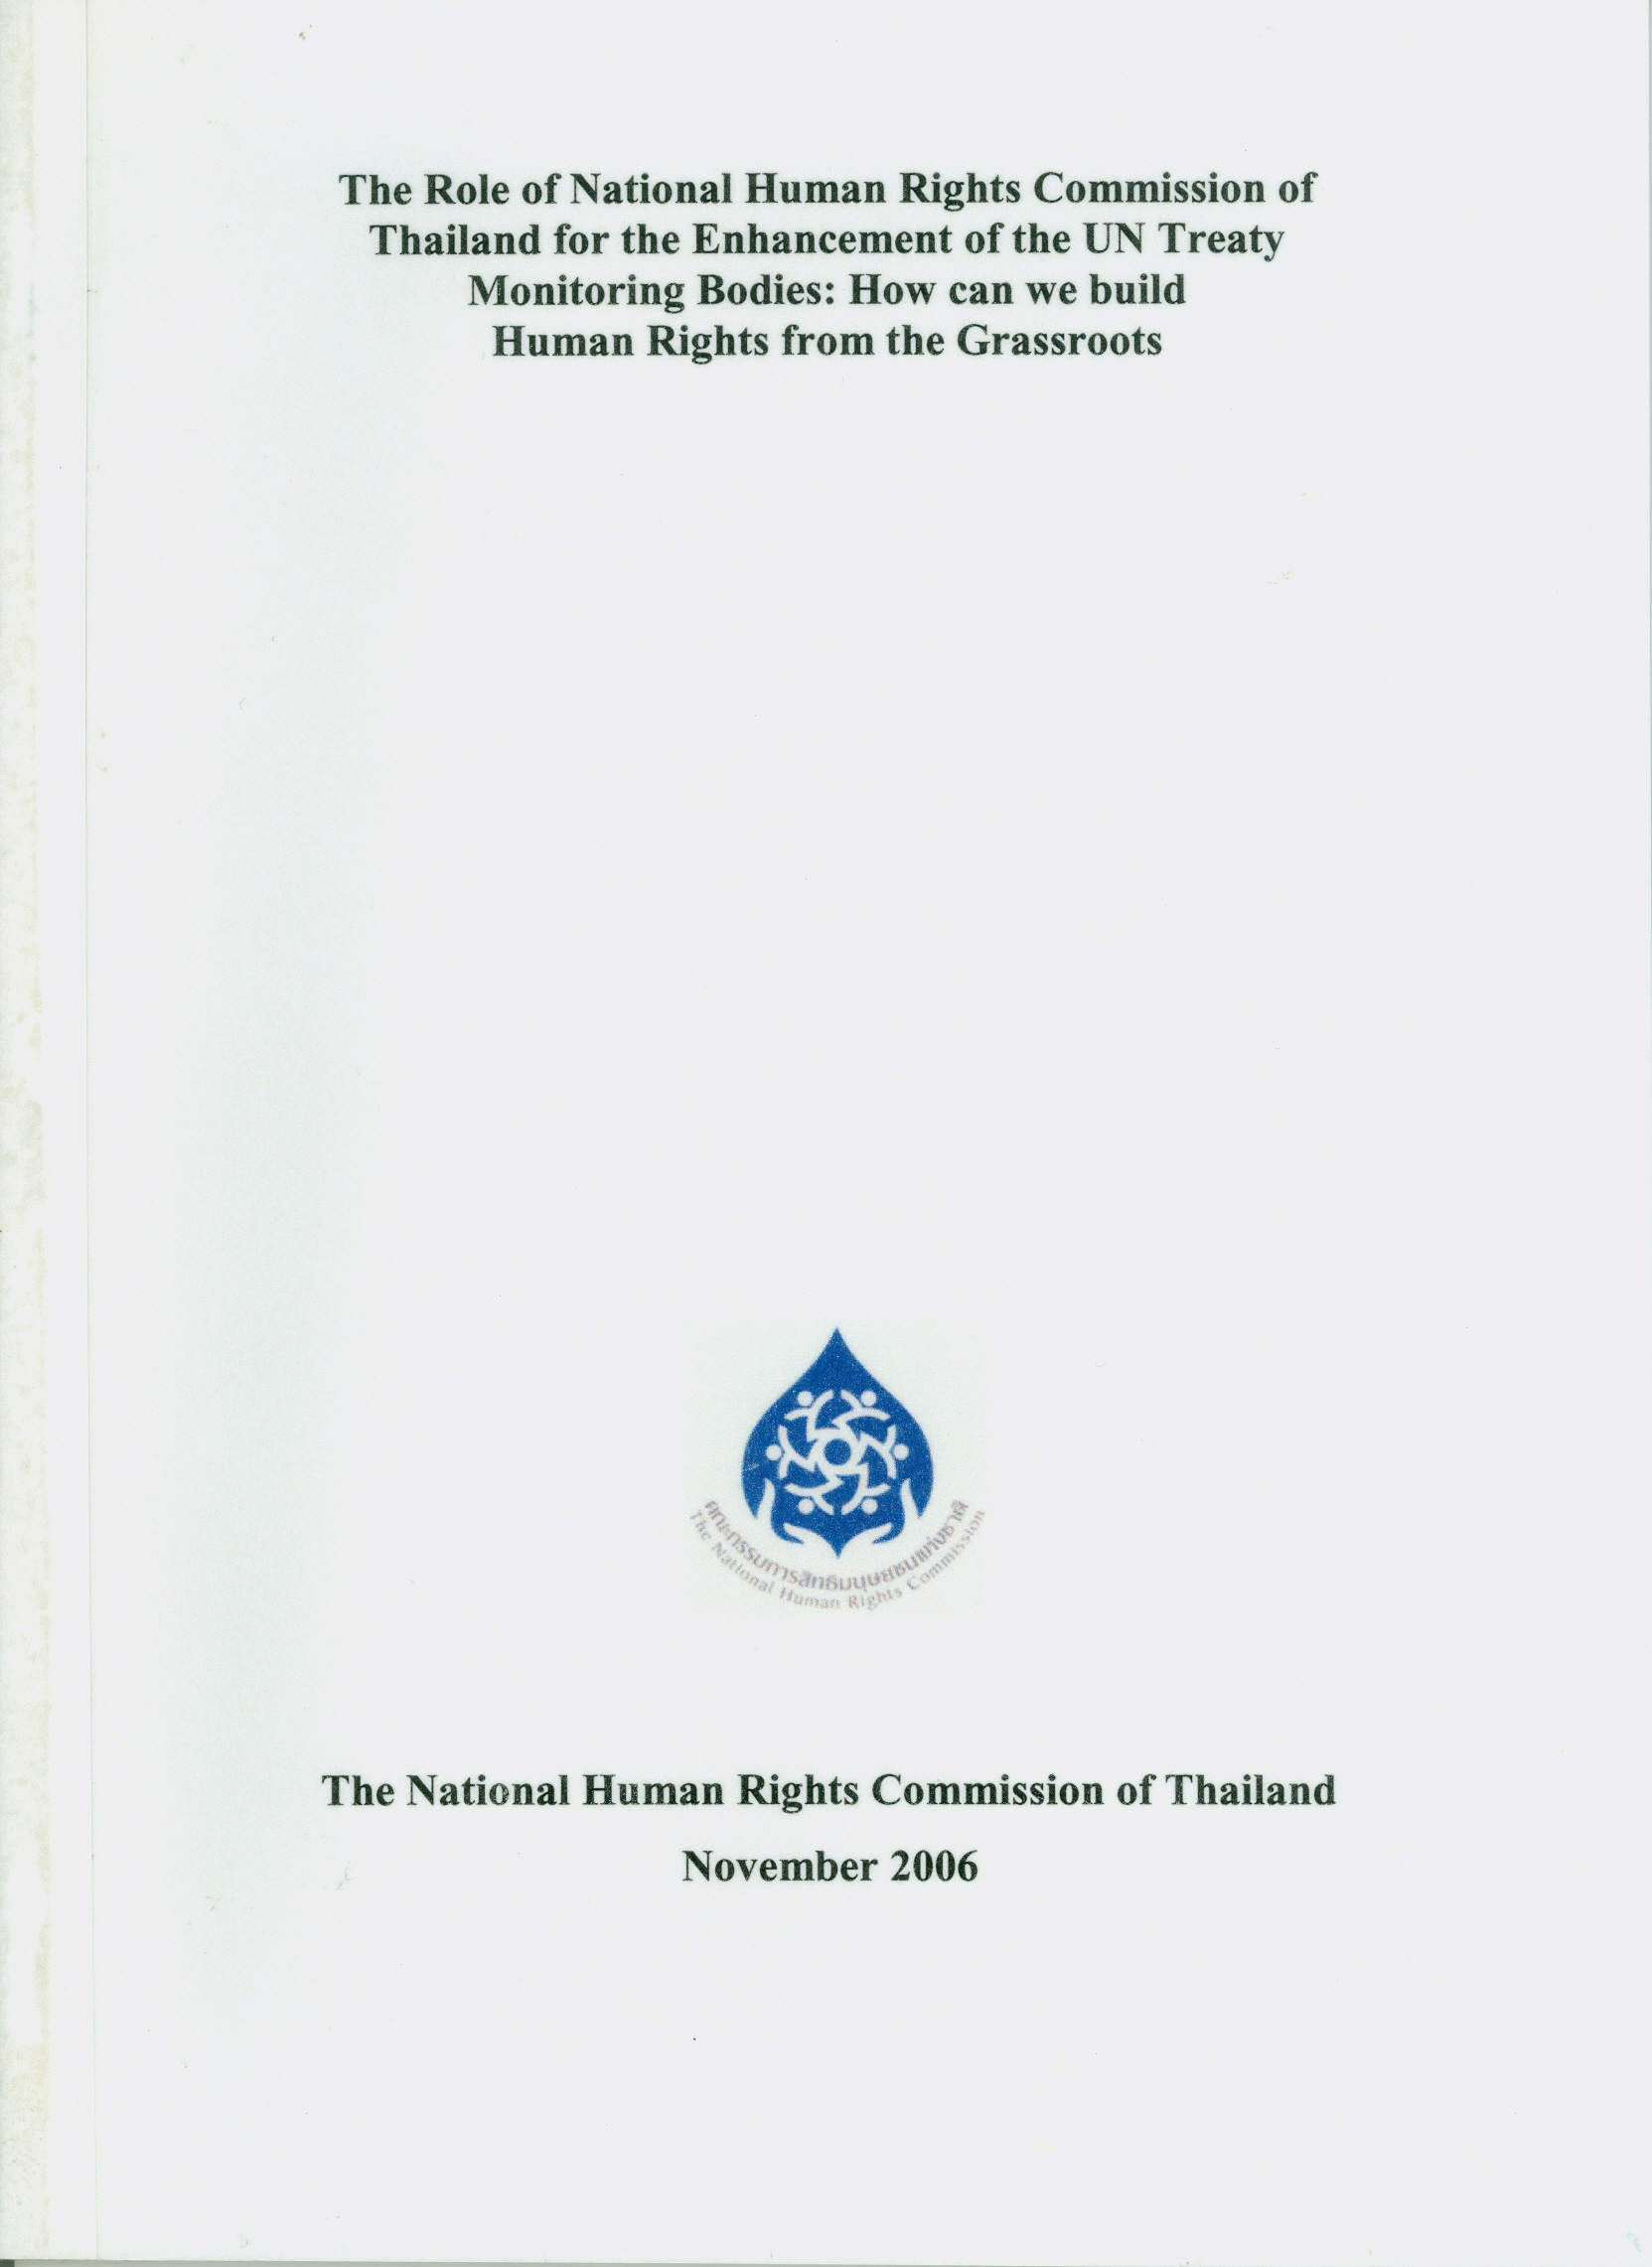 role of National Human Rights Commission of Thailand for the enhancement of the UN treaty monitoring bodies: how can we build human rights from the grassroots /National Human Rights Commission of Thailand